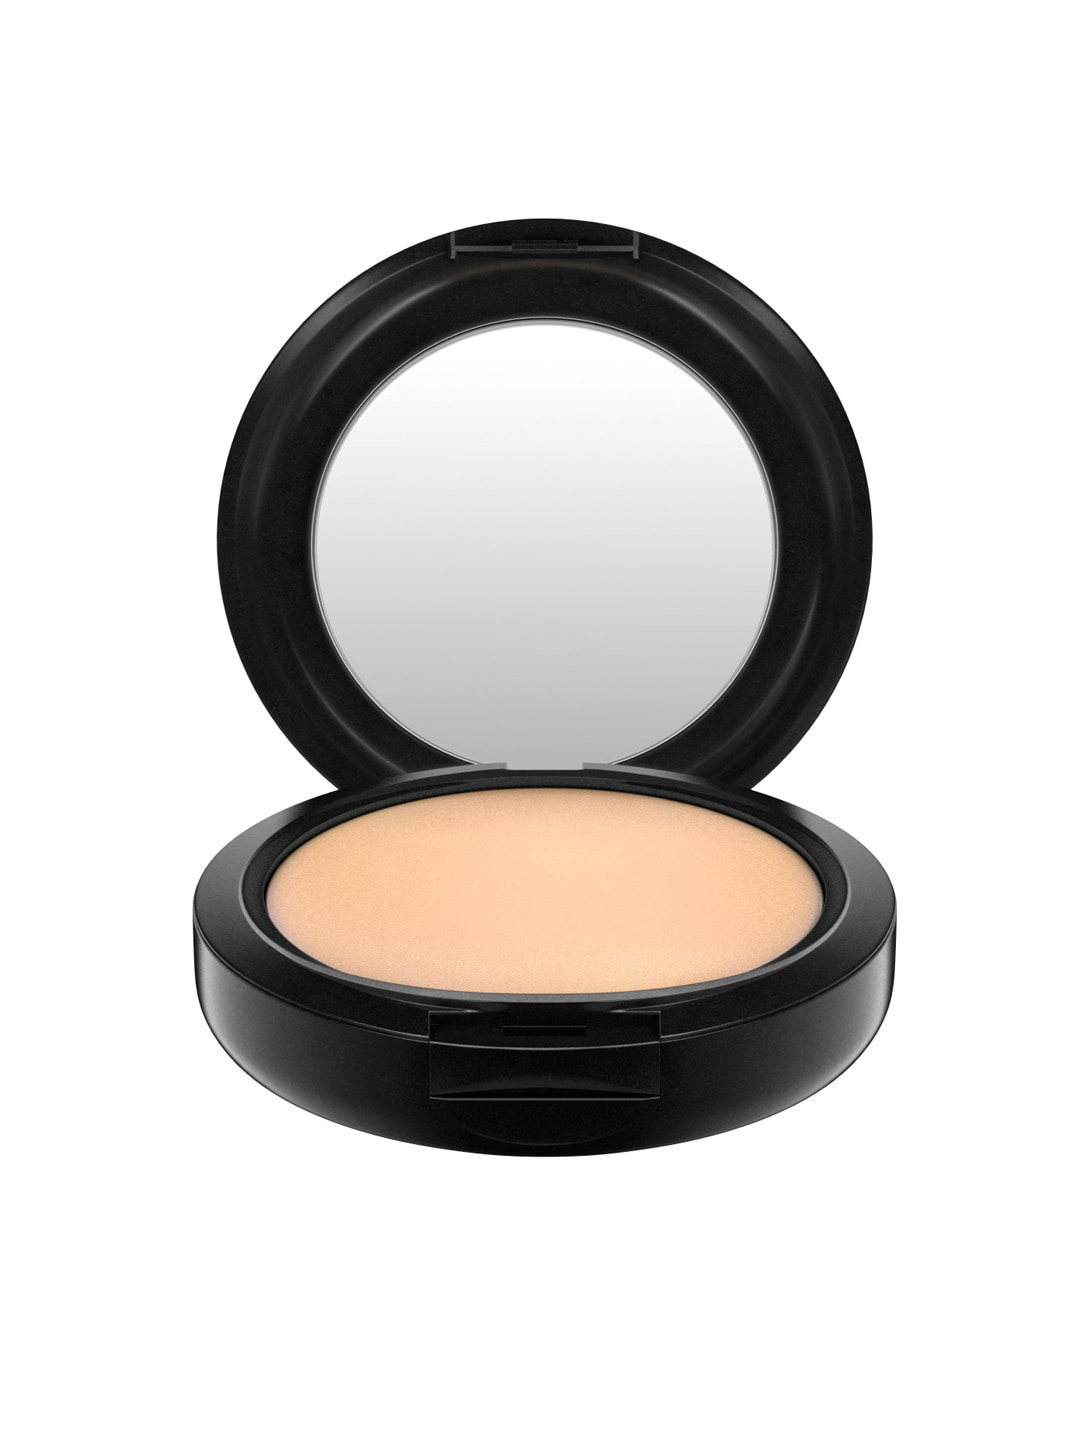 M.A.C NC25 Studio Fix Powder Plus Foundation image